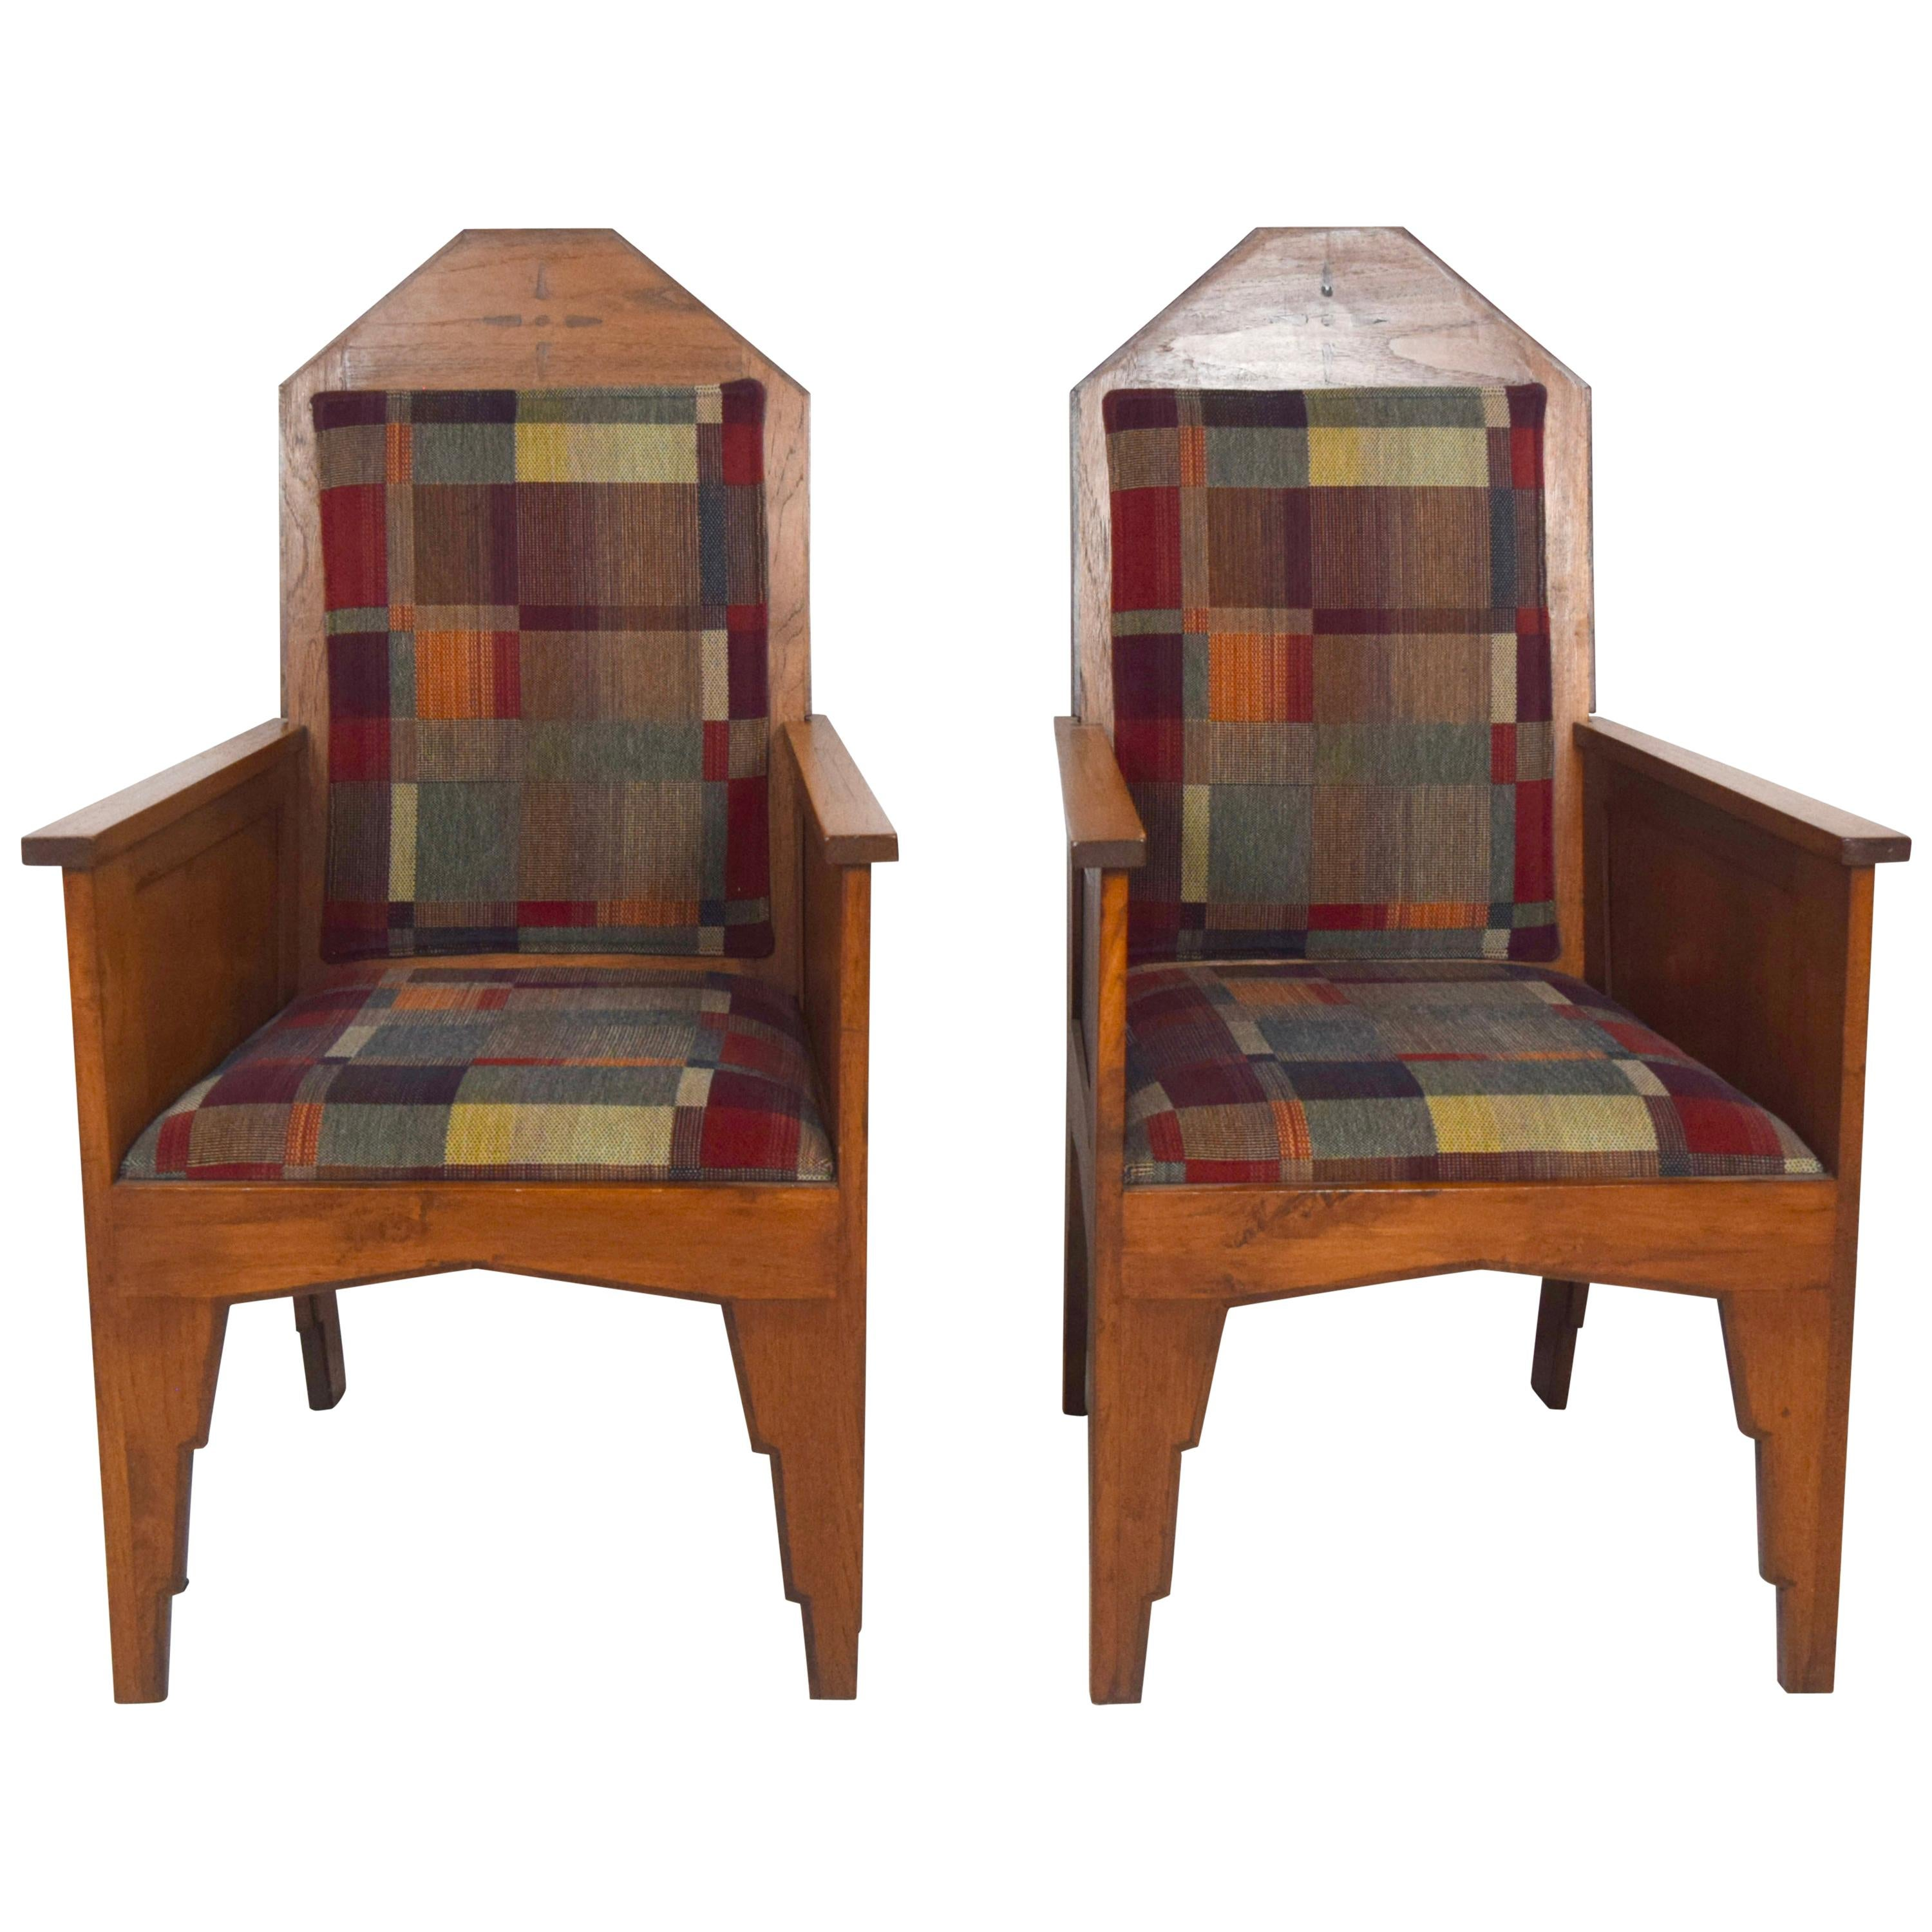 Amsterdam School Armchairs, Indonesia 1920s, Set of 2